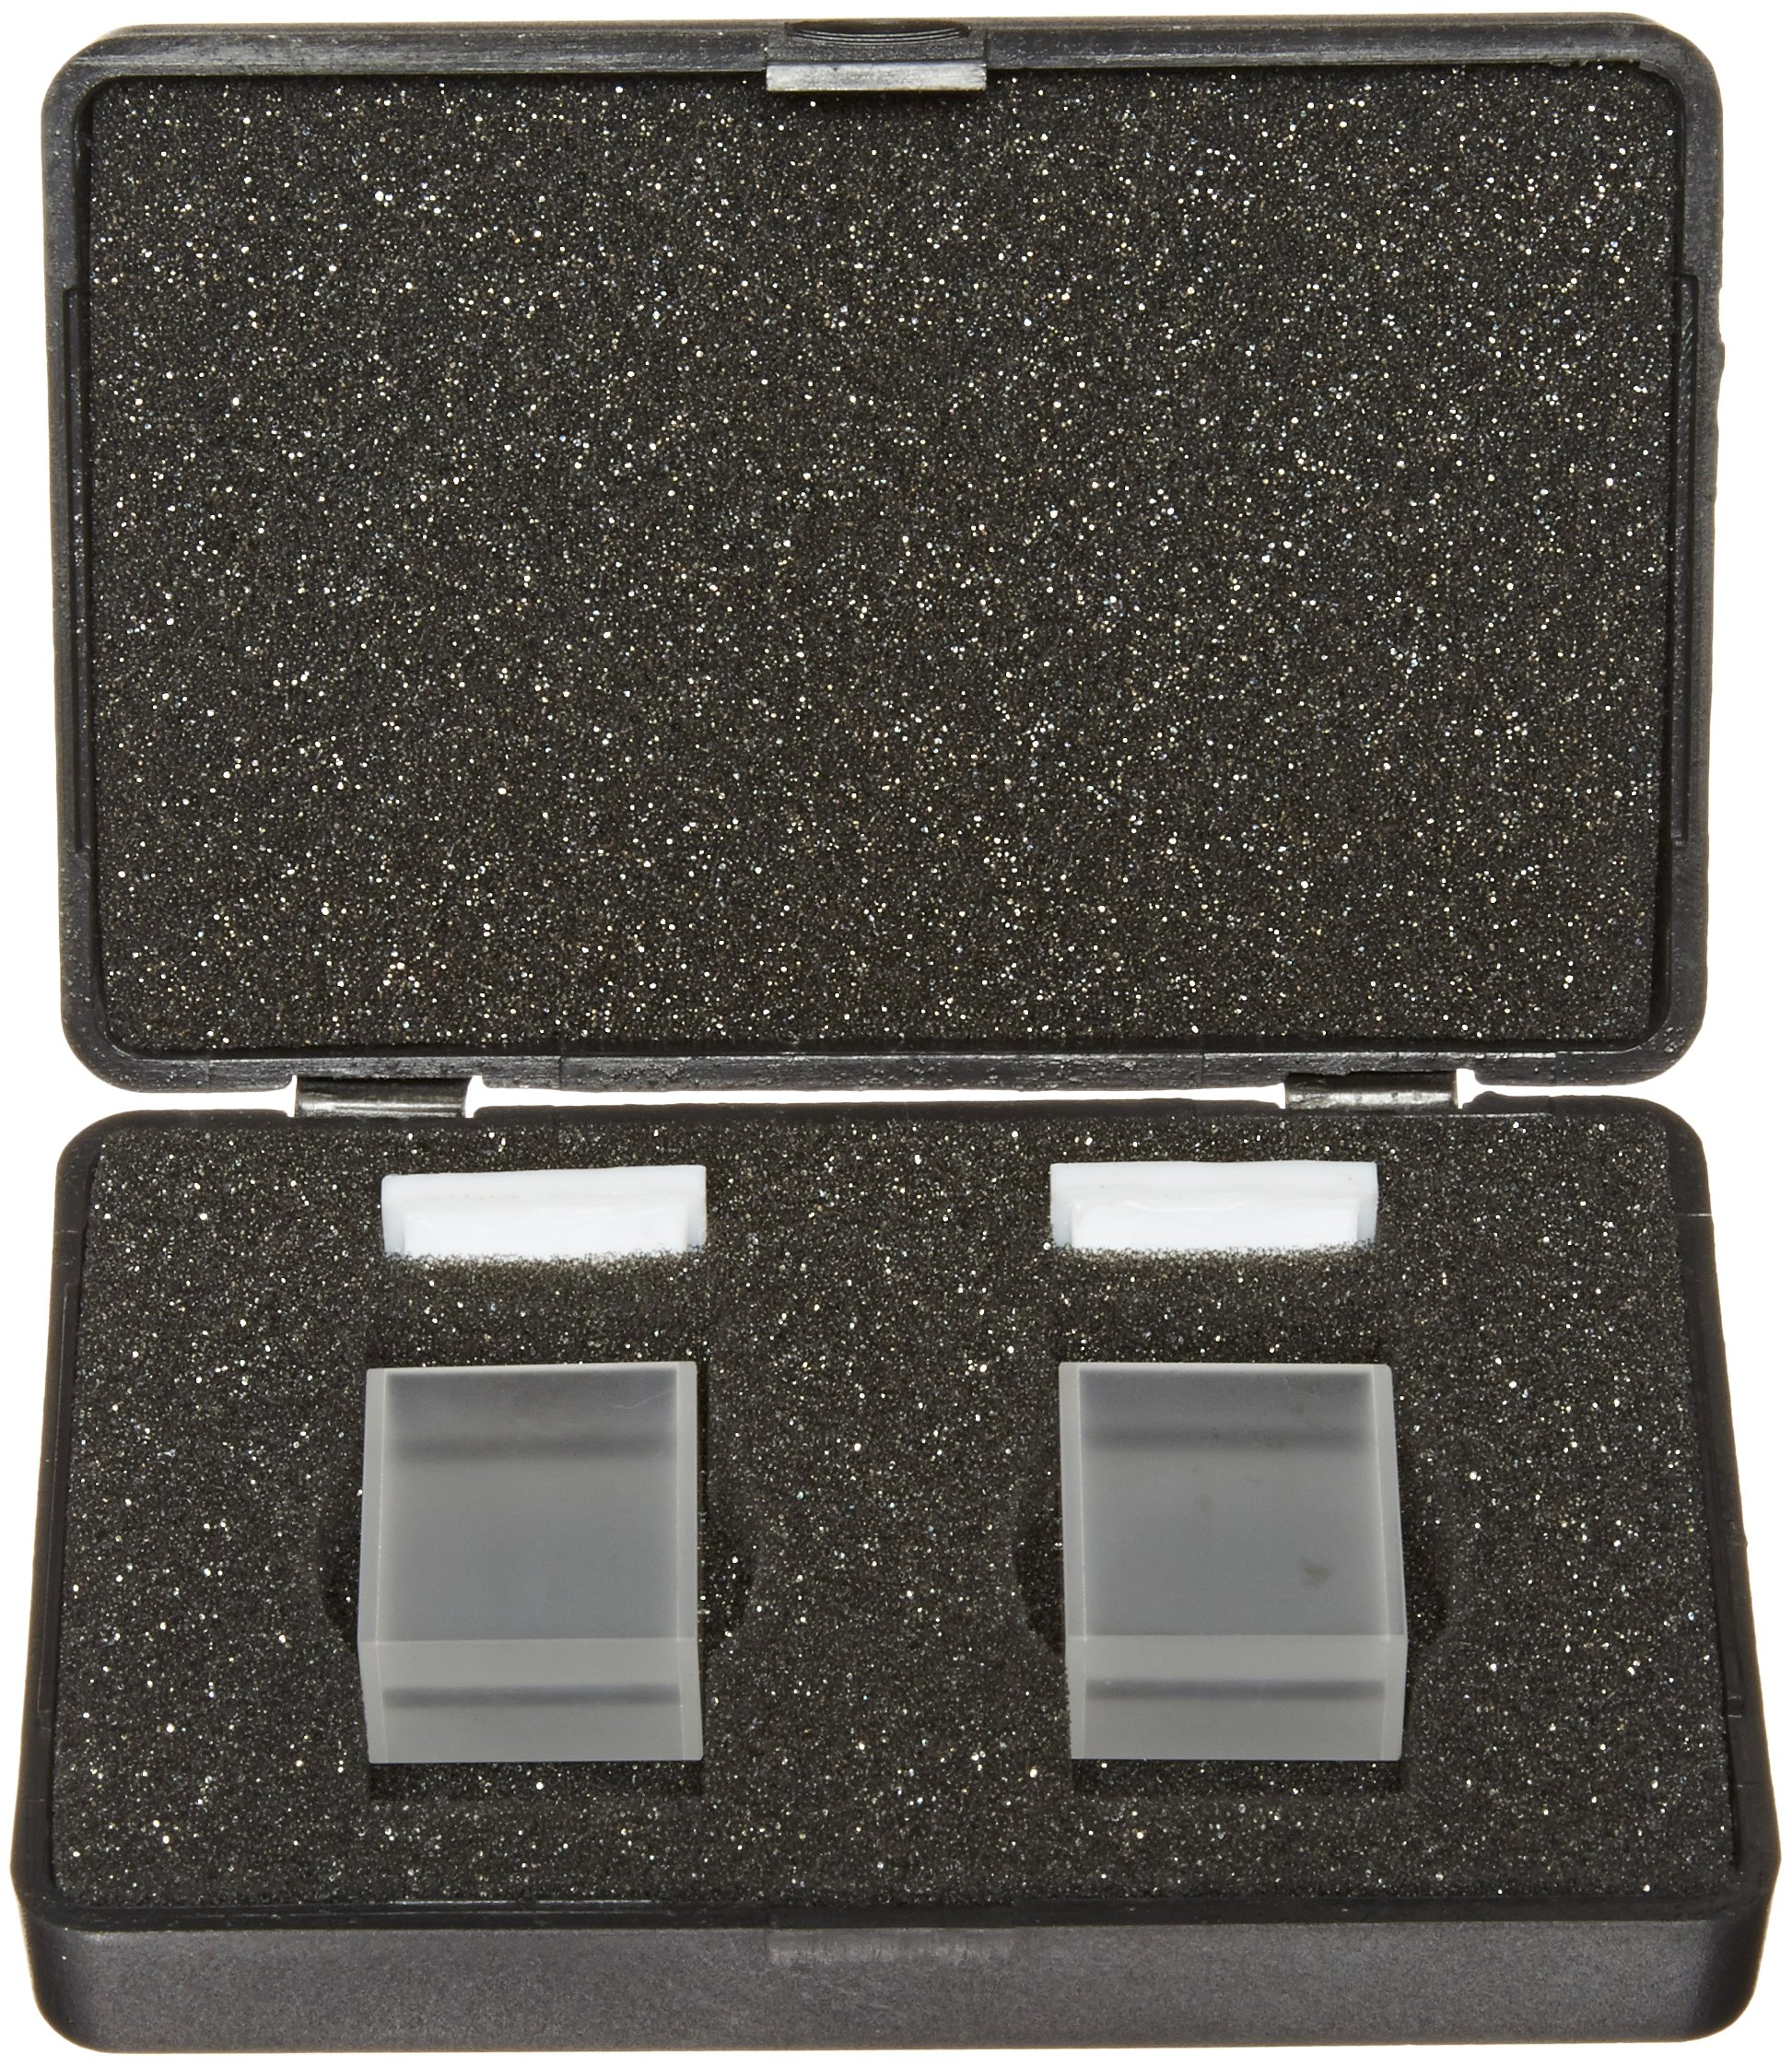 Varsal Type 17-I-20 IR Quartz Micro Short Rectangular Spectrophotometer Cell with Lid, 20mm Pathlength, 0.6ml Capacity, 180nm to 4000nm Range (Case of 2) by Varsal (Image #2)